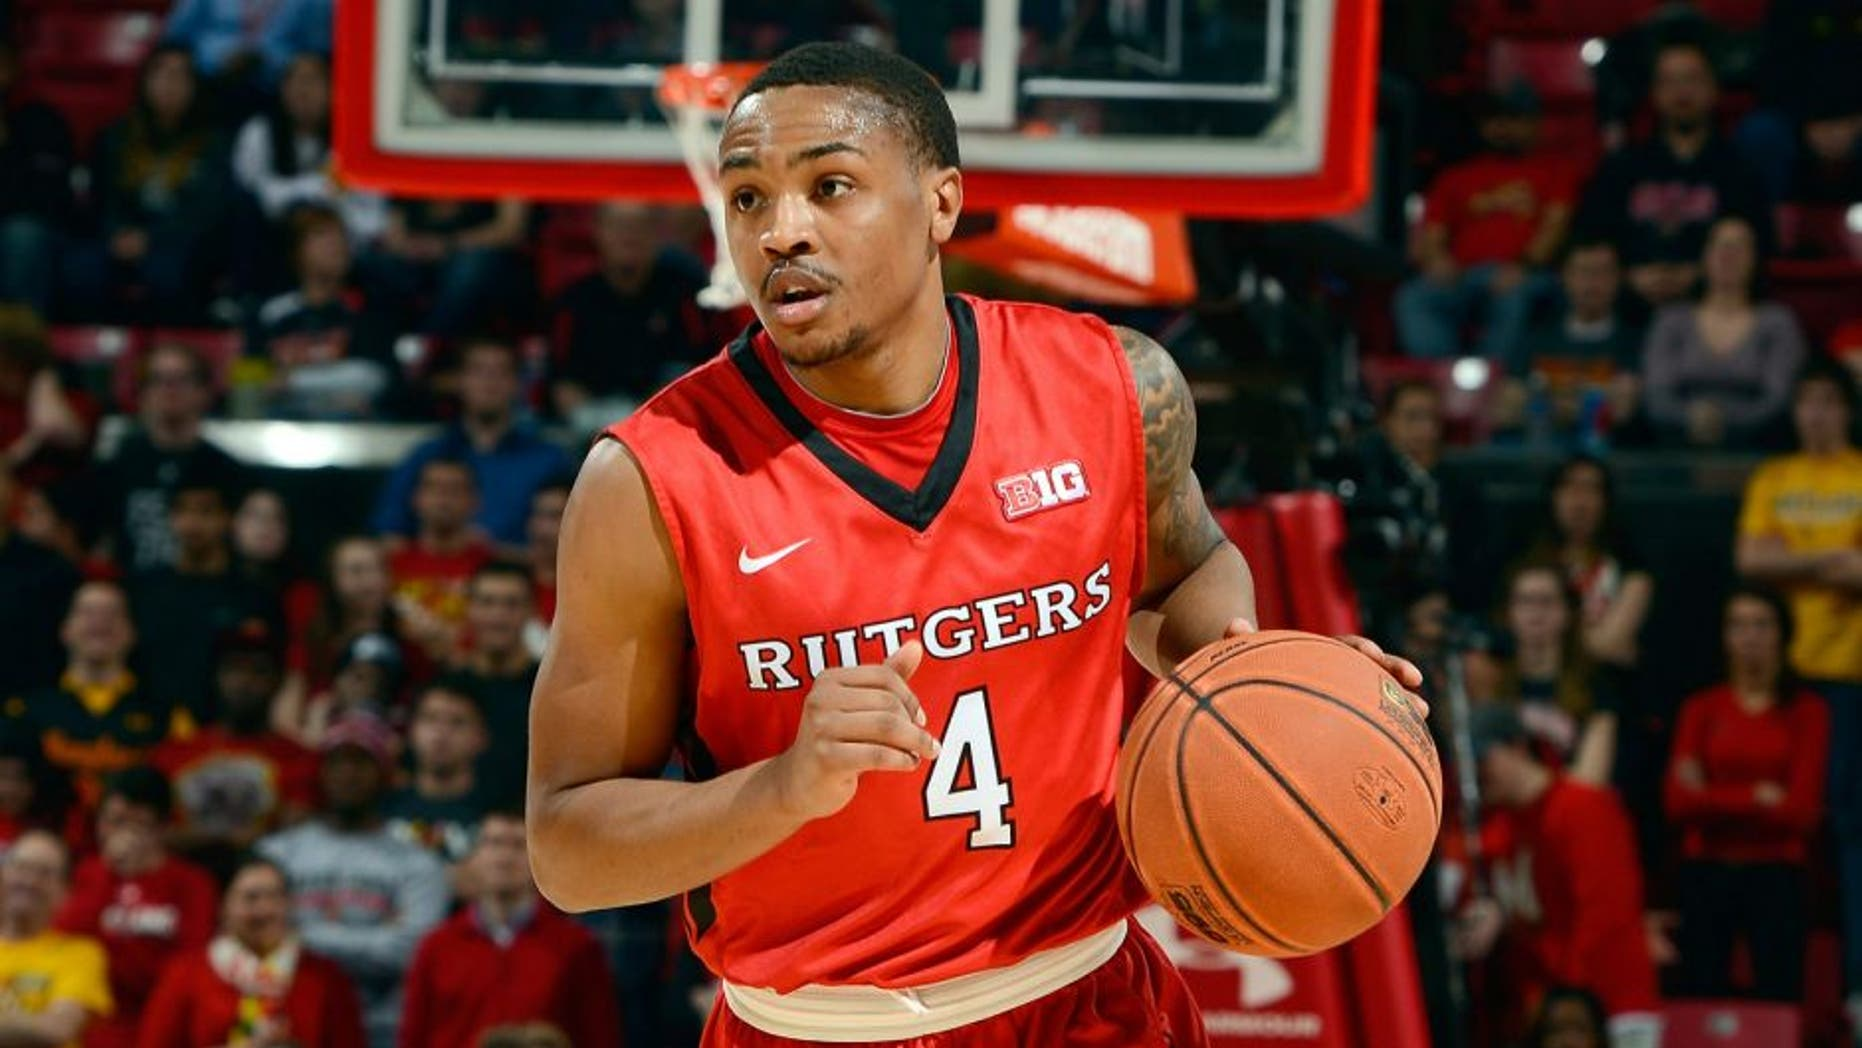 COLLEGE PARK, MD - JANUARY 14: Myles Mack #4 of the Rutgers Scarlet Knights handles the ball against the Maryland Terrapins at the Xfinity Center on January 14, 2015 in College Park, Maryland. (Photo by G Fiume/Maryland Terrapins/Getty Images)